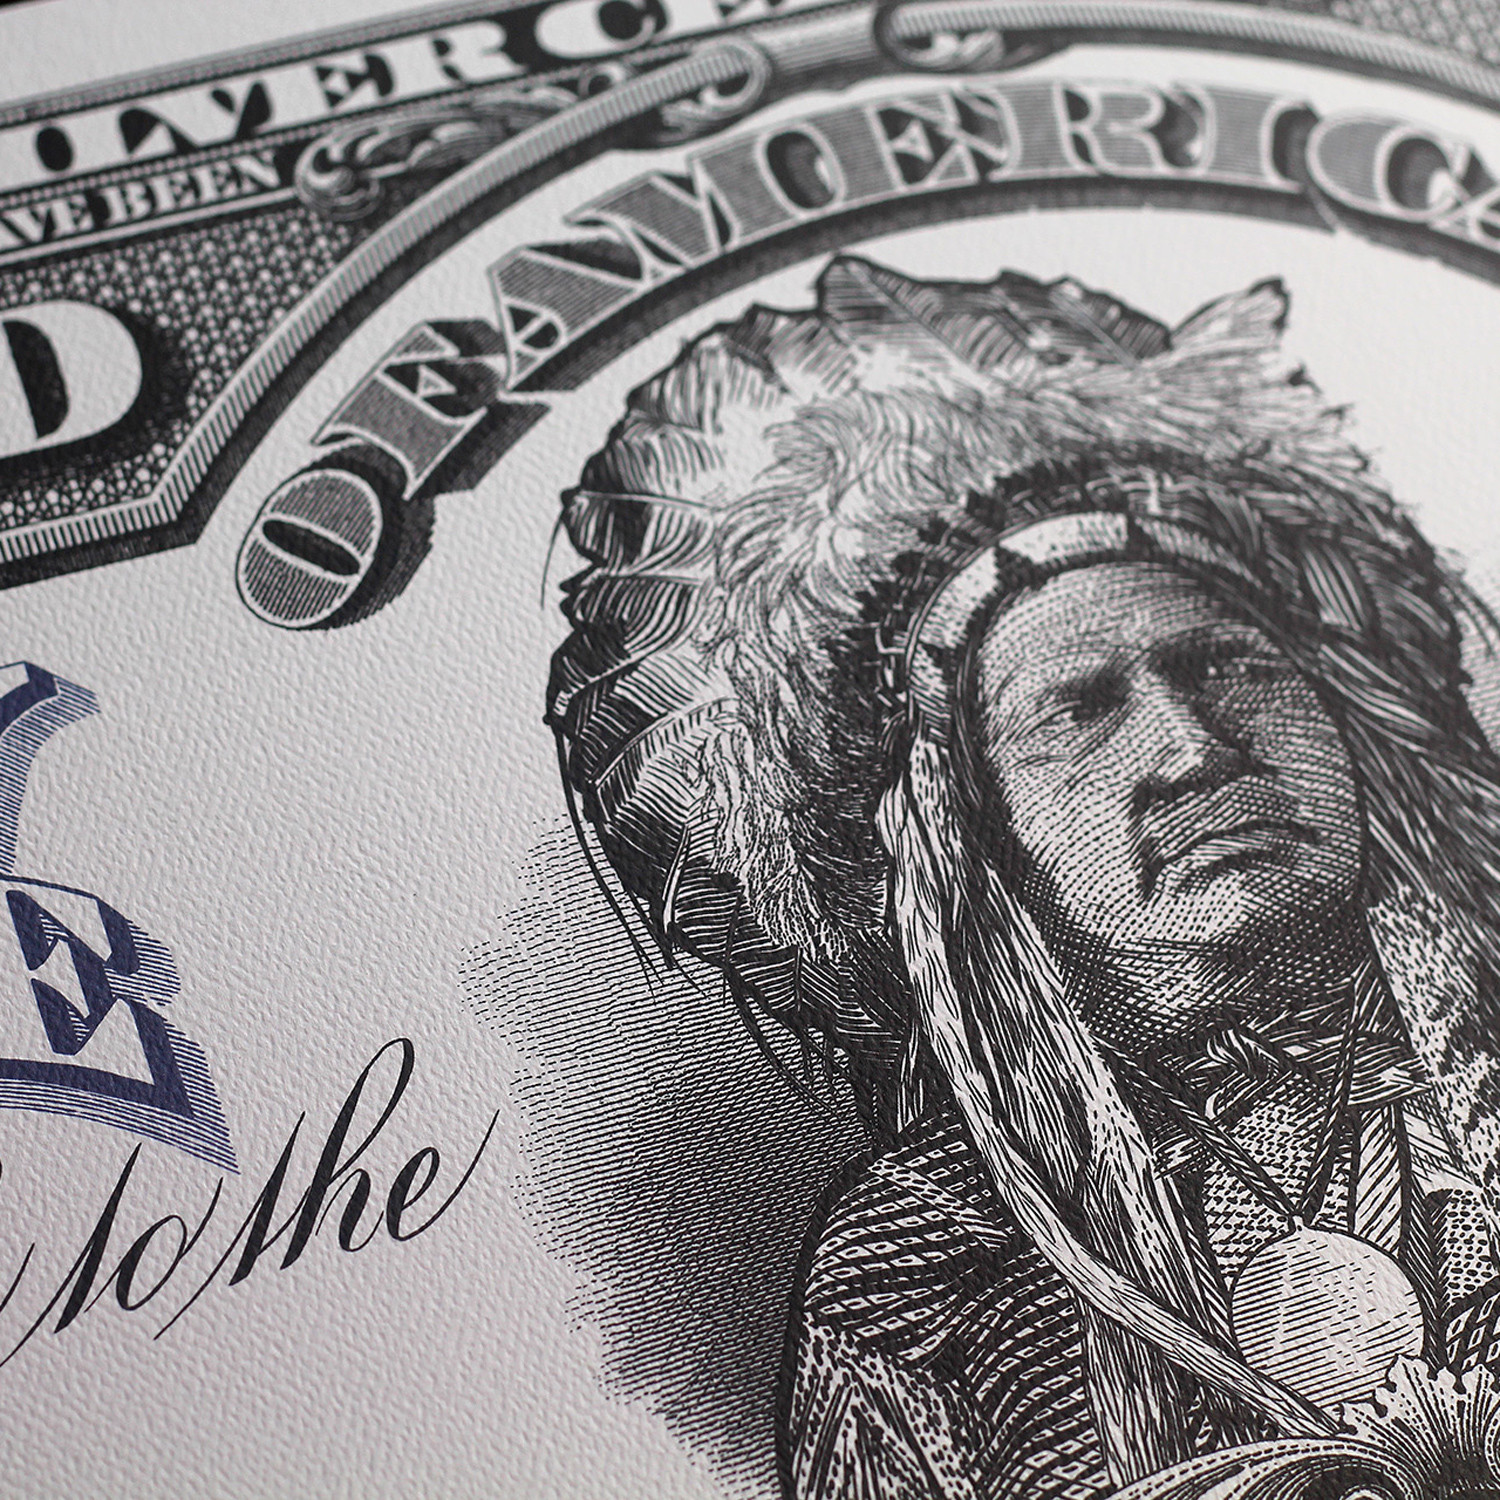 5 Dollar 1899 Silver Certificate The Chief Art Of Money Lost